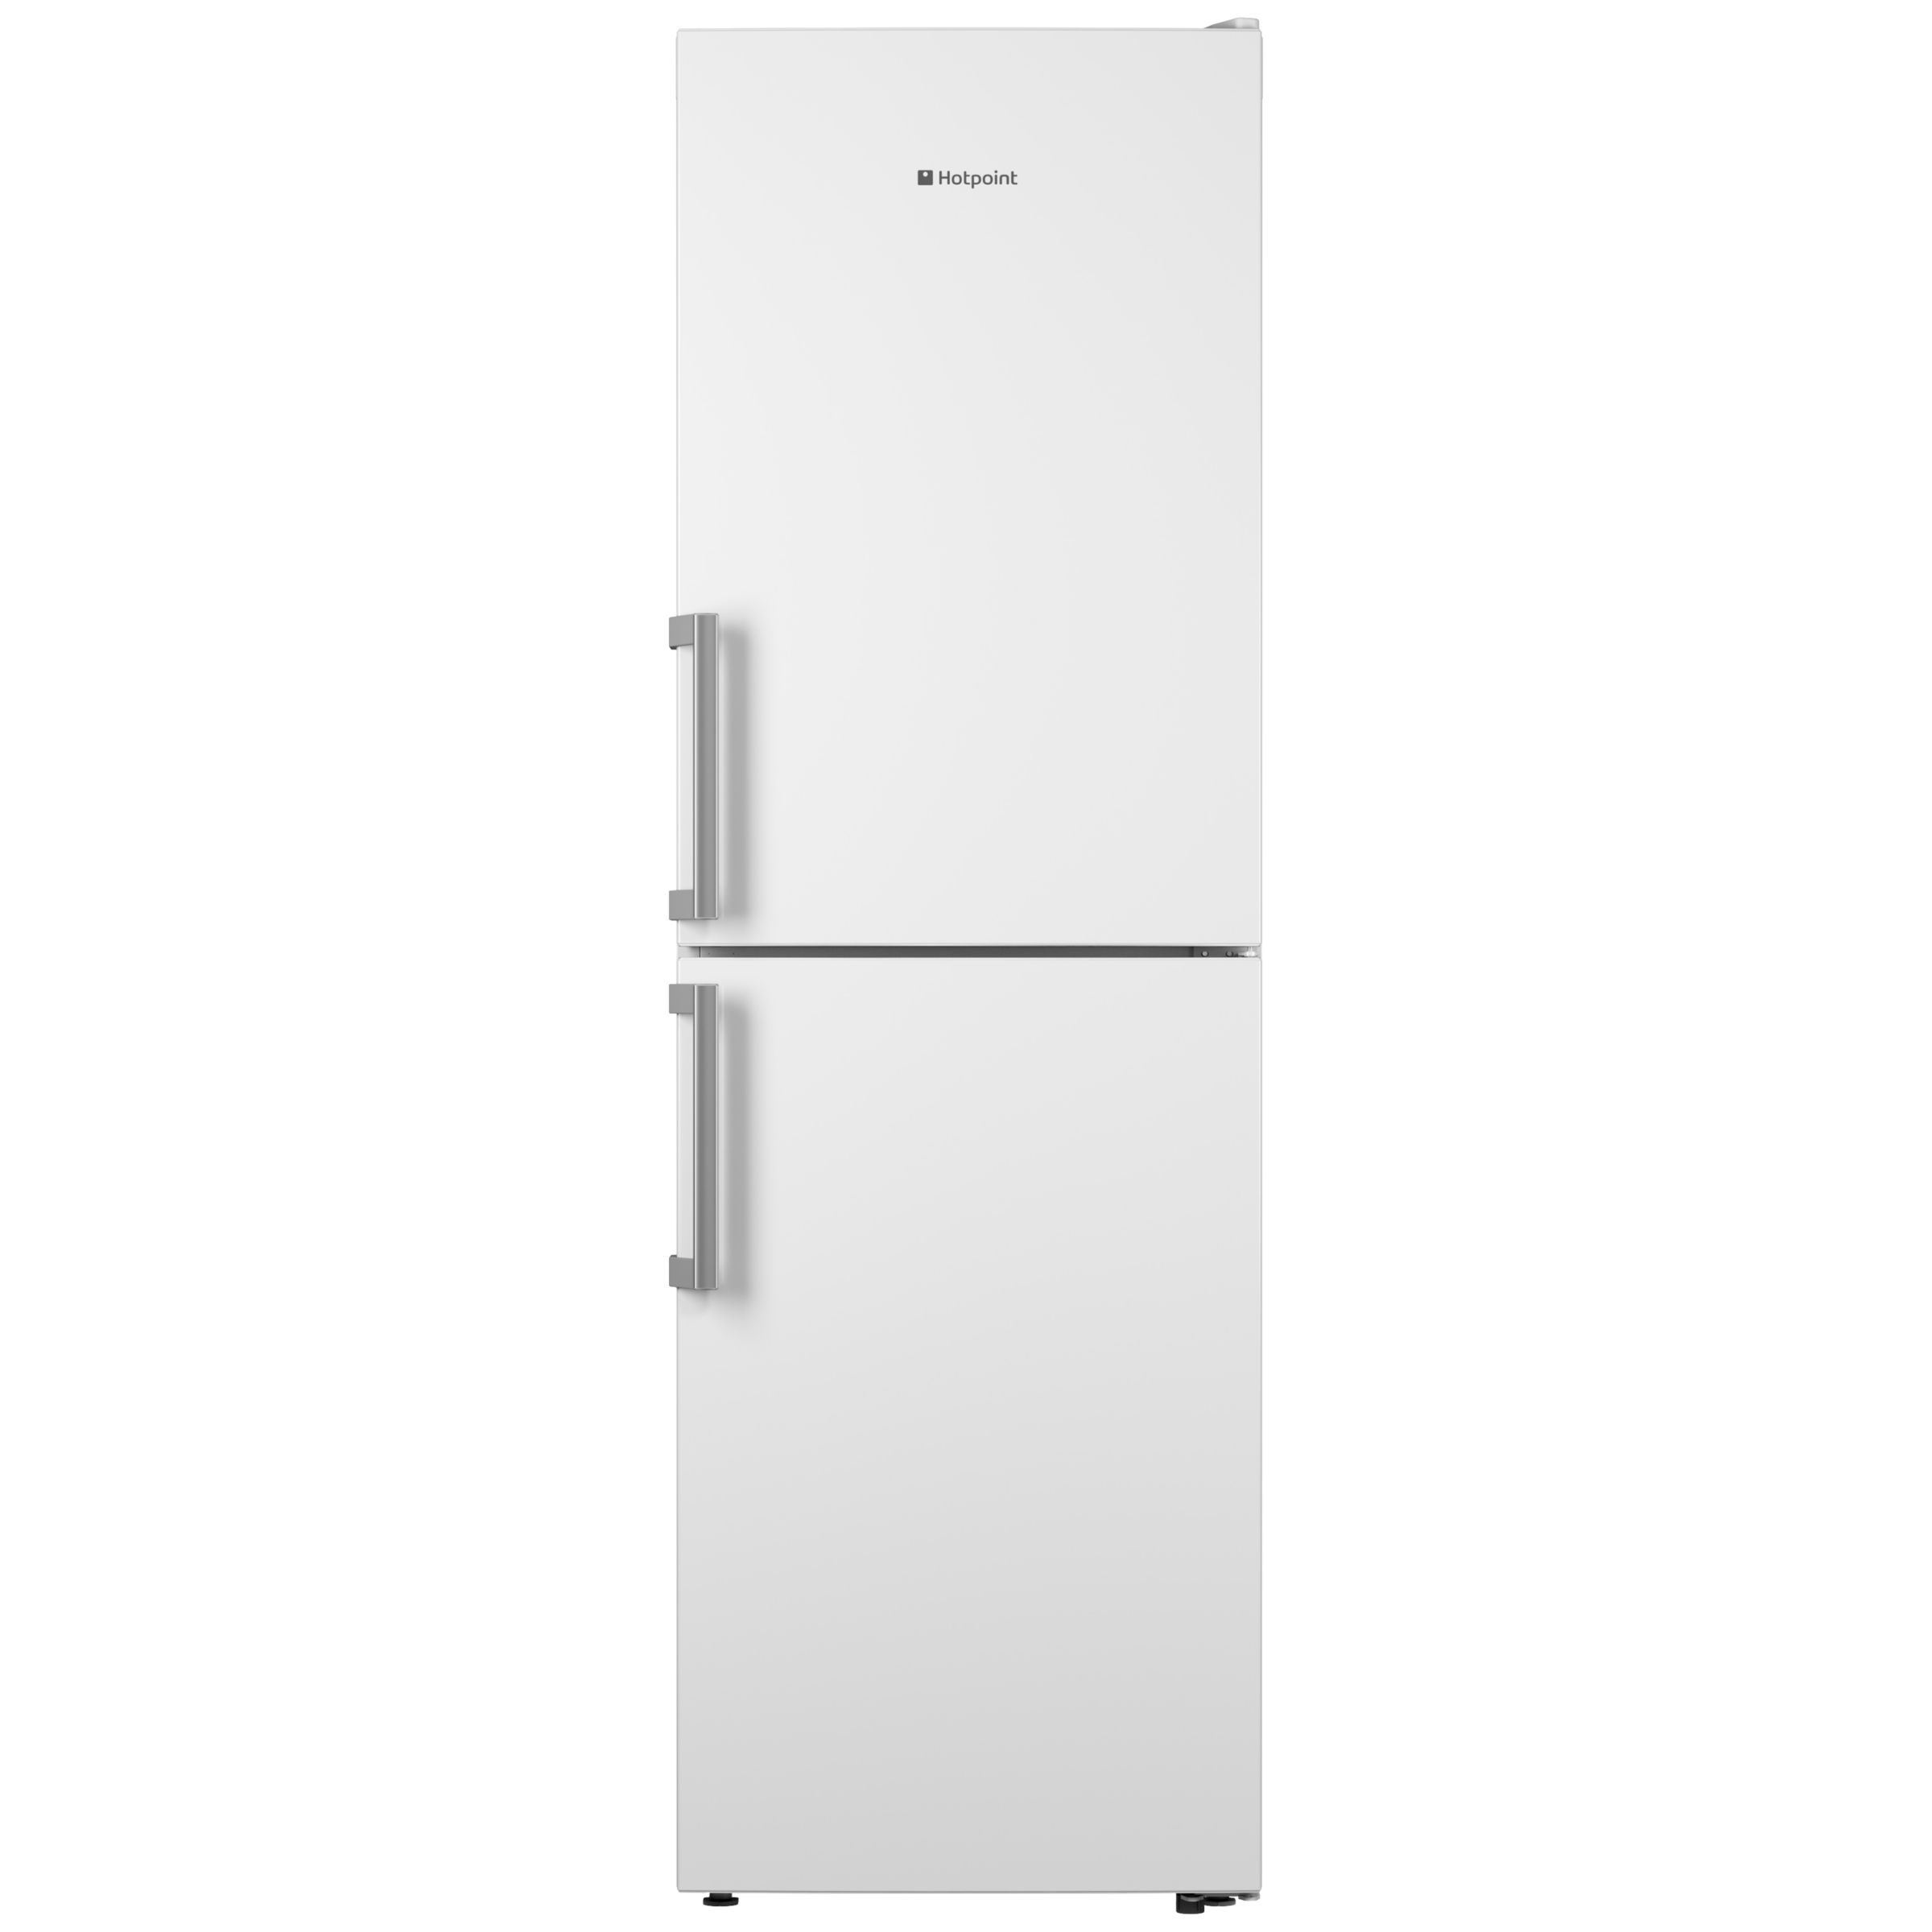 fridge freezers bosch samsung smeg siemens miele john lewis Bar Refrigerators Undercounter hotpoint xeco85 freestanding fridge freezer a energy rating 60cm wide